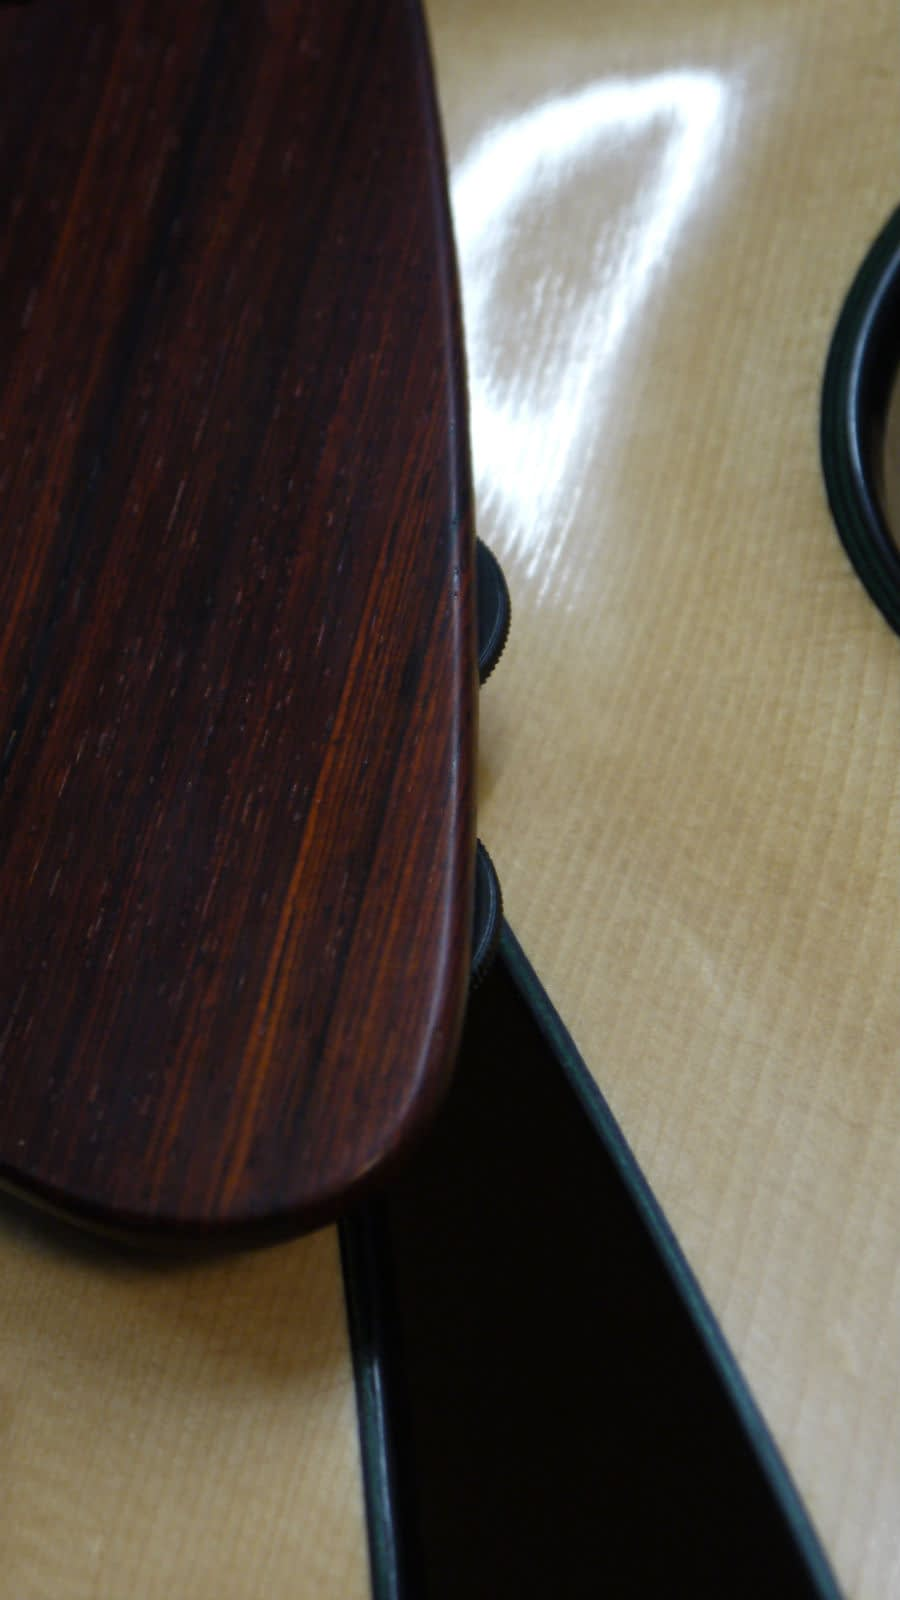 discreet volume and tone controls handmade archtop guitar uk